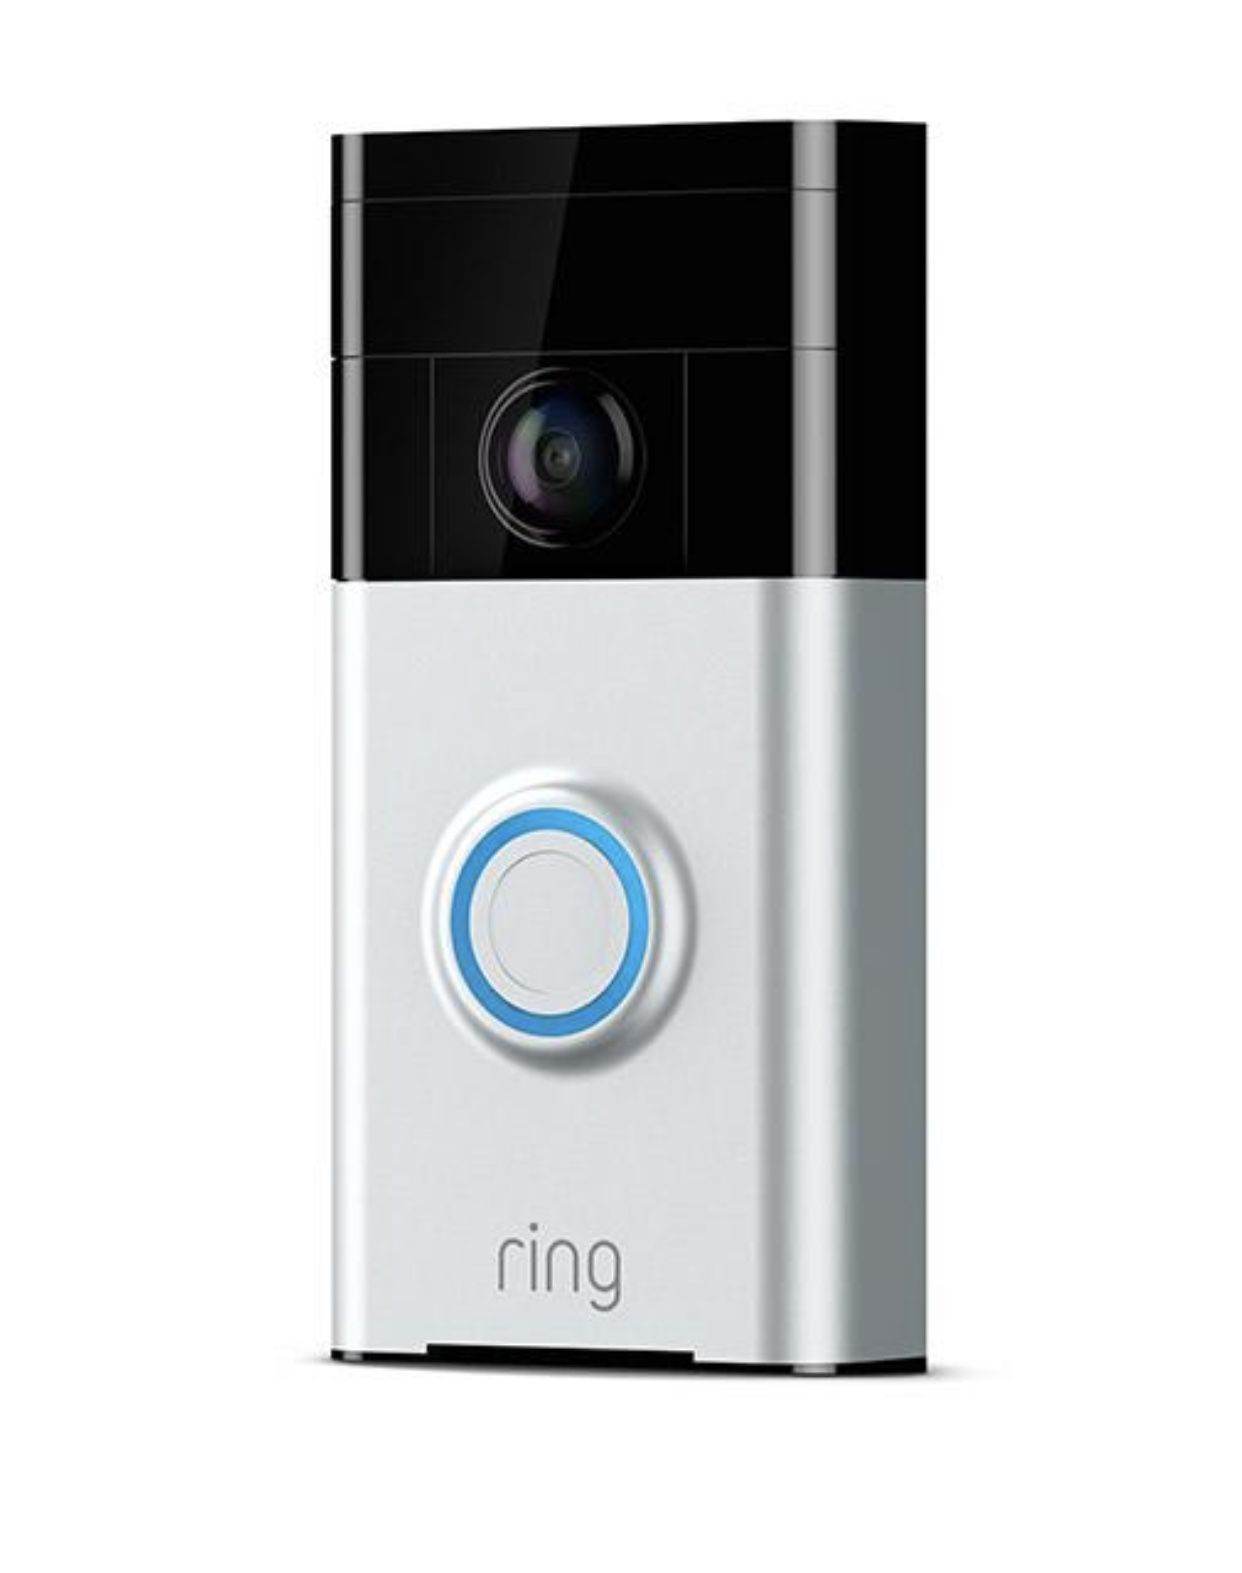 FREE Ring Doorbell! NO CC REQUIRED! Just sign up and share